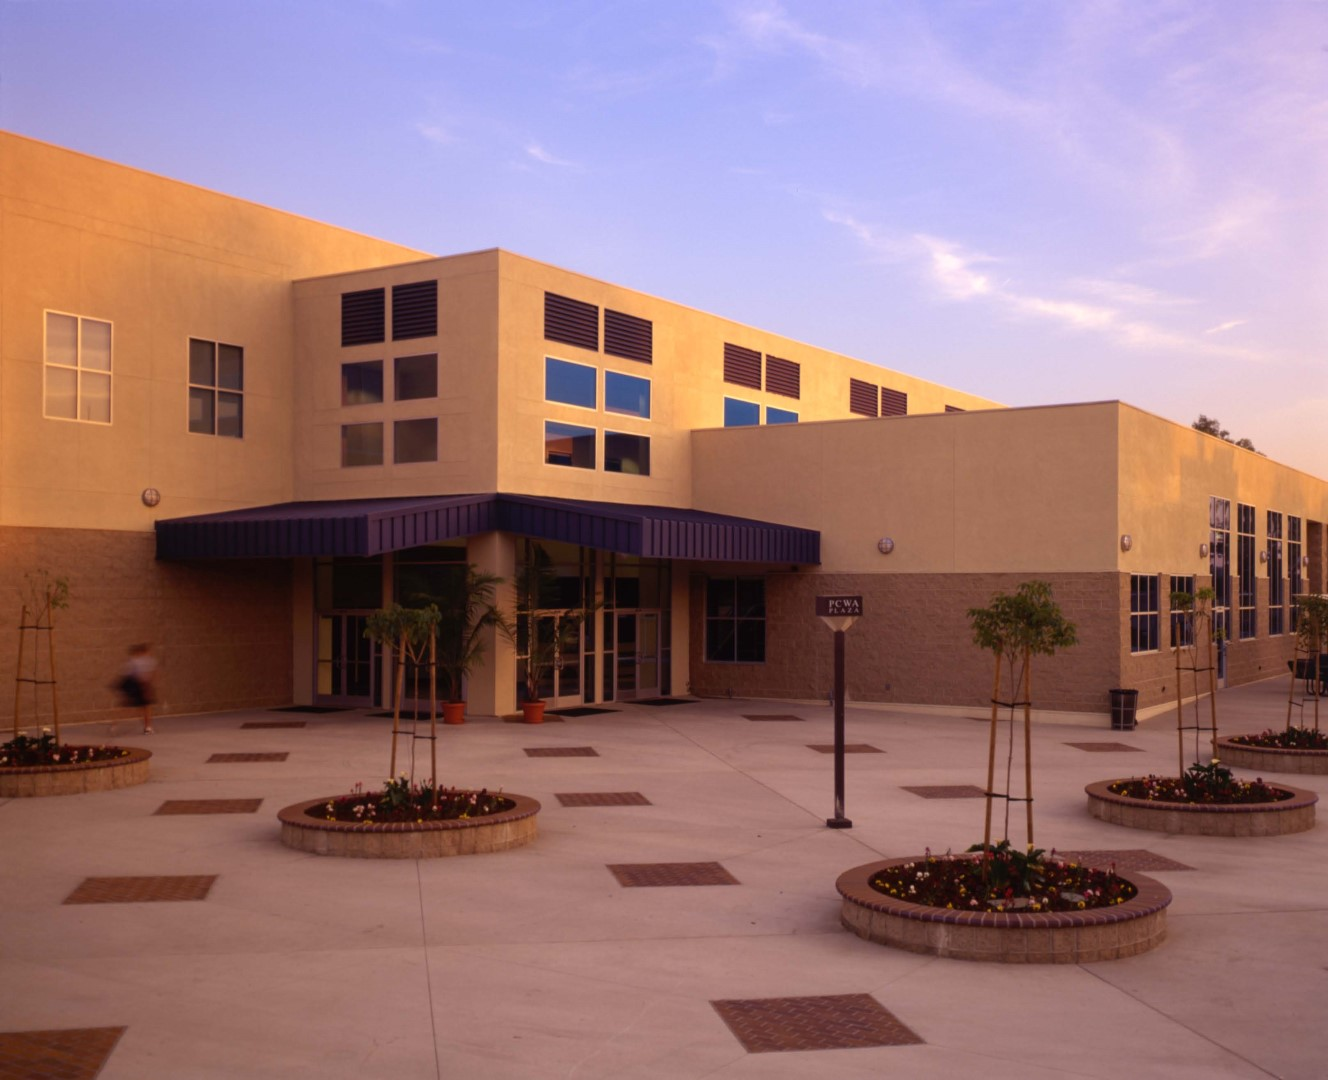 2 Hope International University, Gymnasium_Student Center (Exterior Day), Fullerton, CA